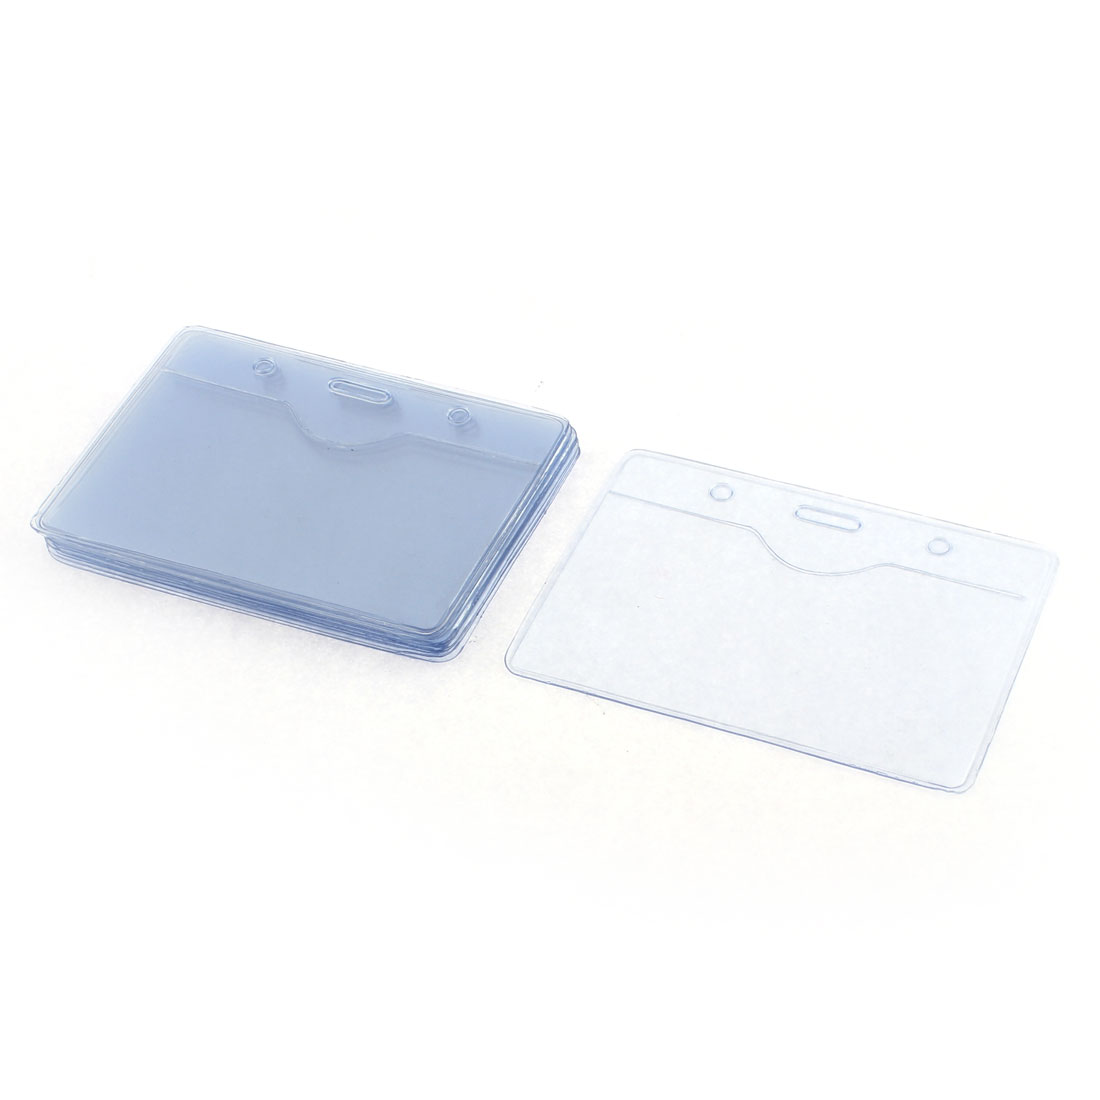 Soft Plastic Horizontal Badge Pocket ID Card Holder 90mm x 54mm 10 Pcs